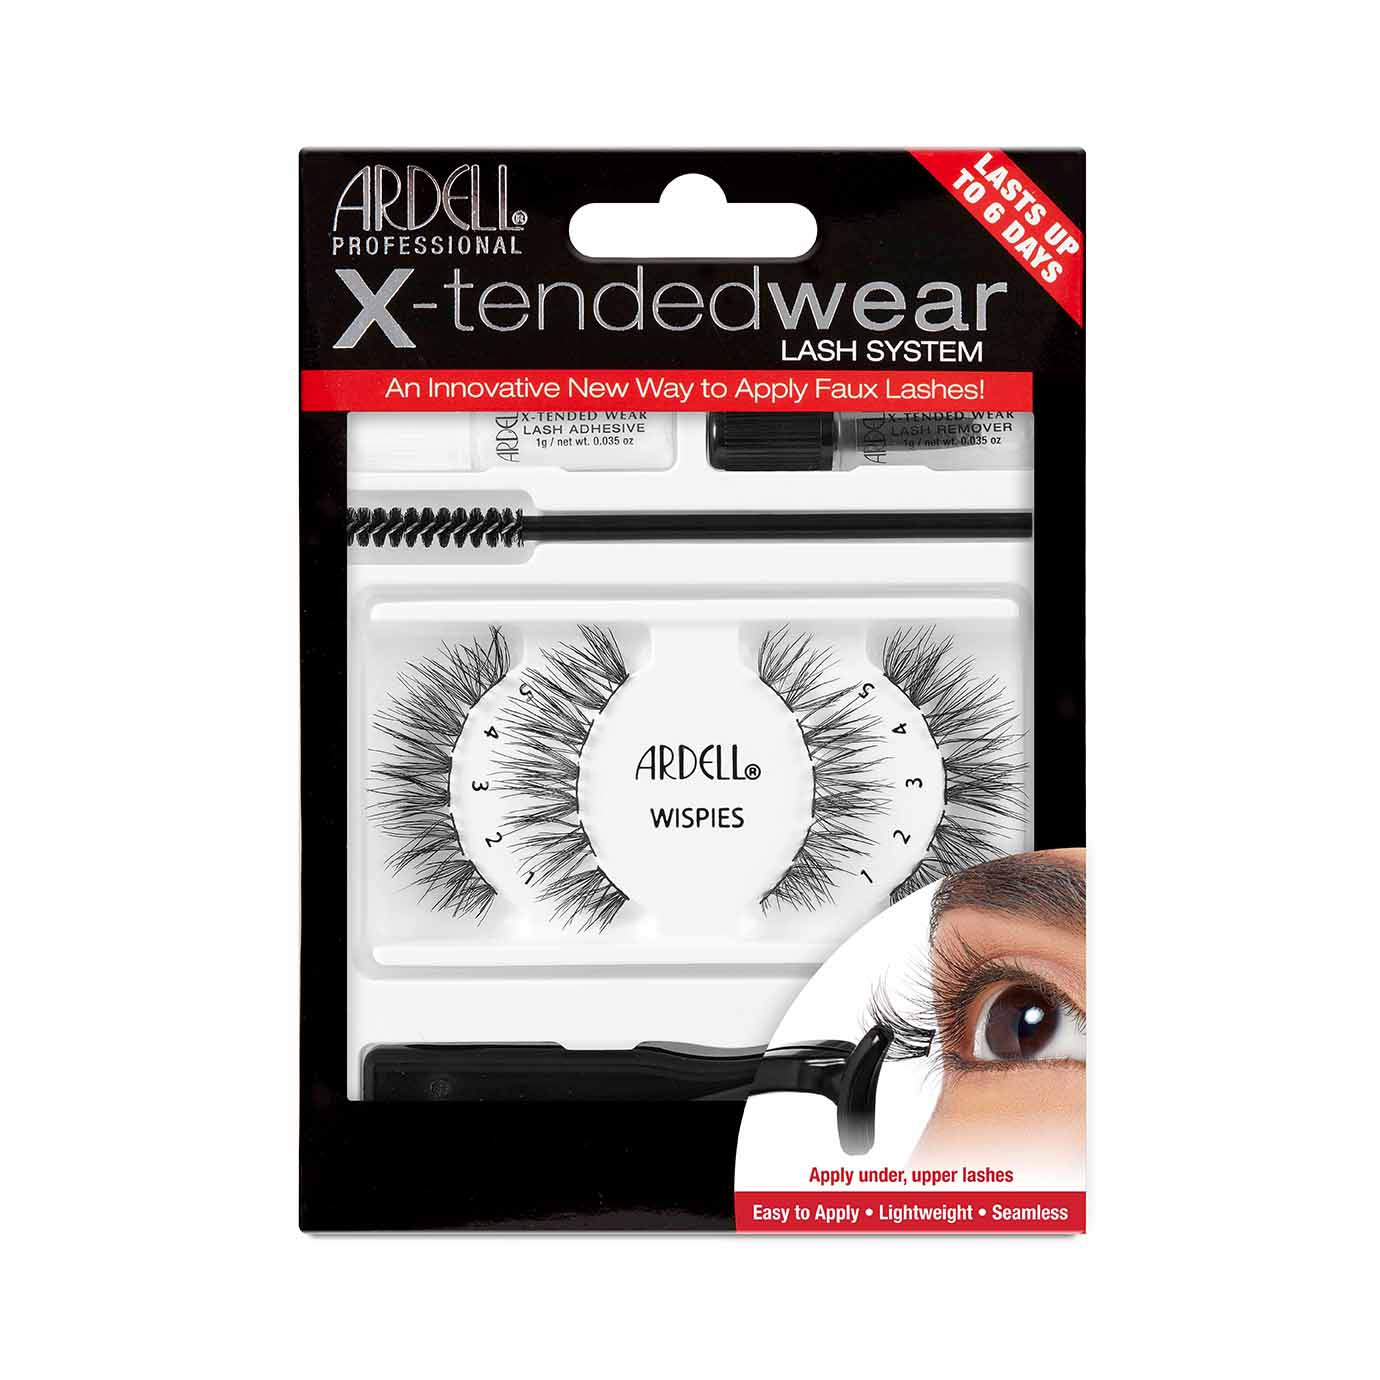 Ardell X-tended Wear Wispies